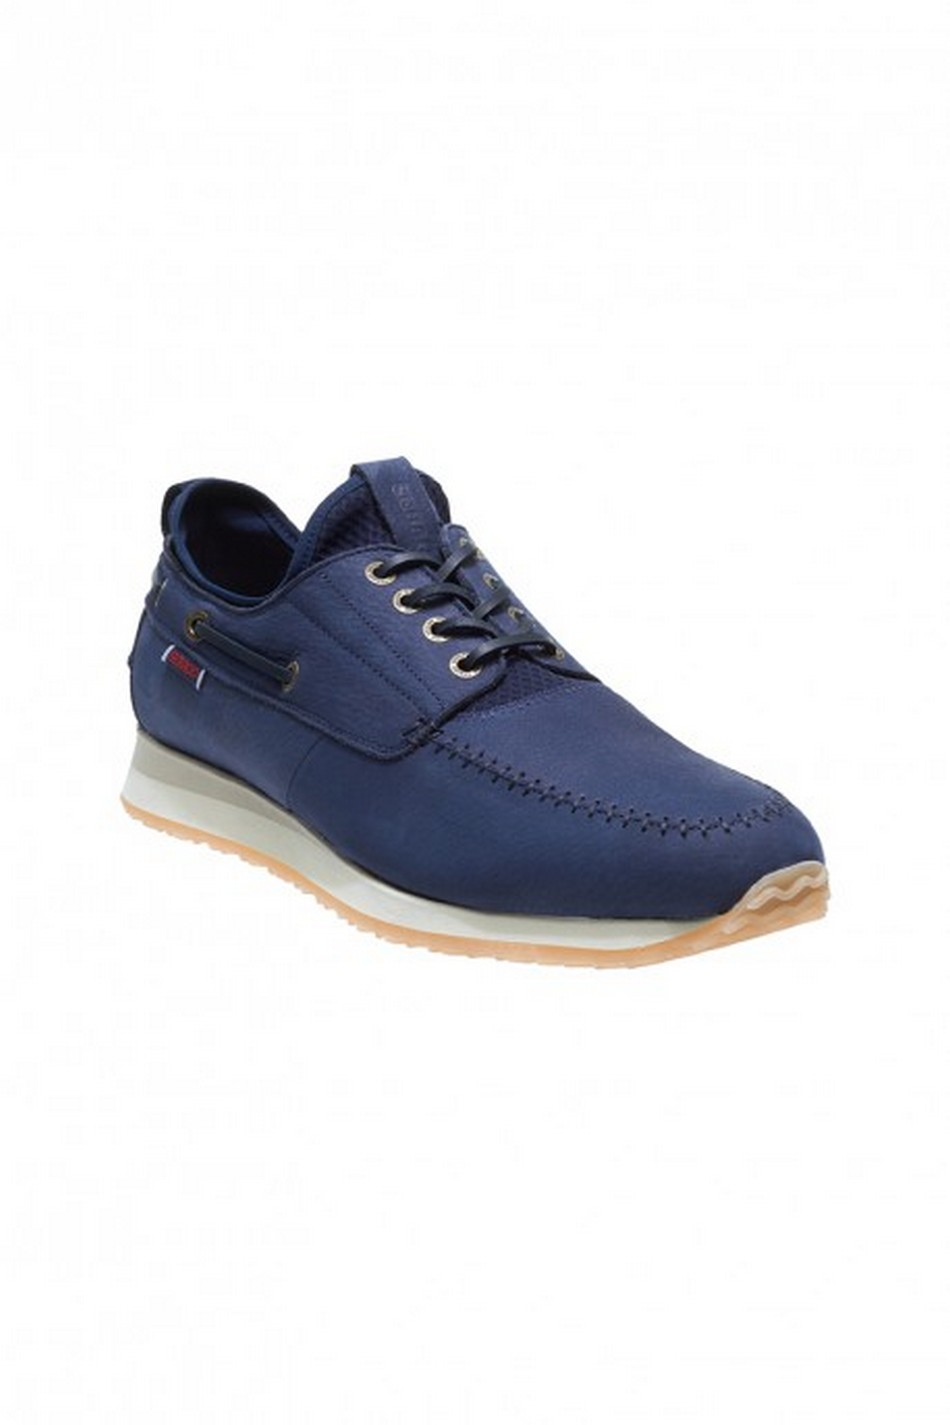 B192026 JUDE FOR EYE boat chaussures Homme  Navy de SEBAGO